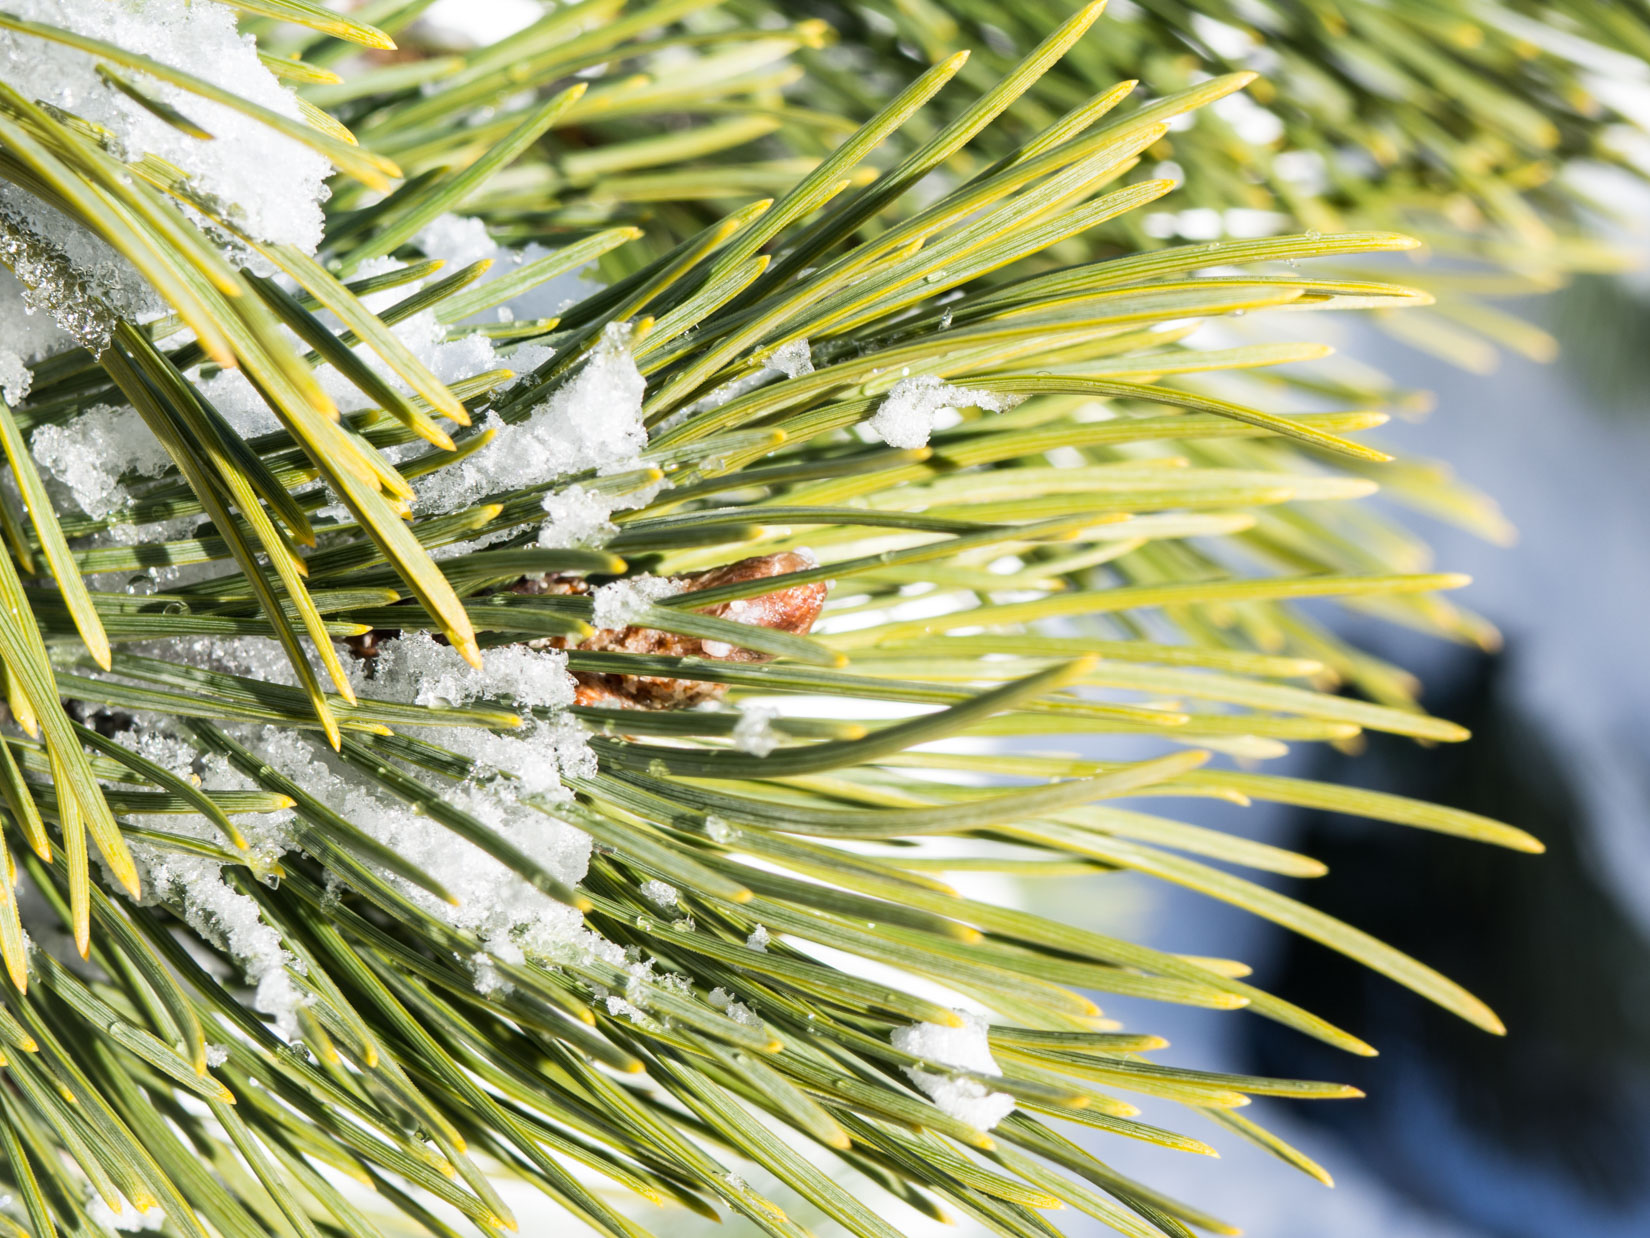 Pine Leaves with Snow and Ice